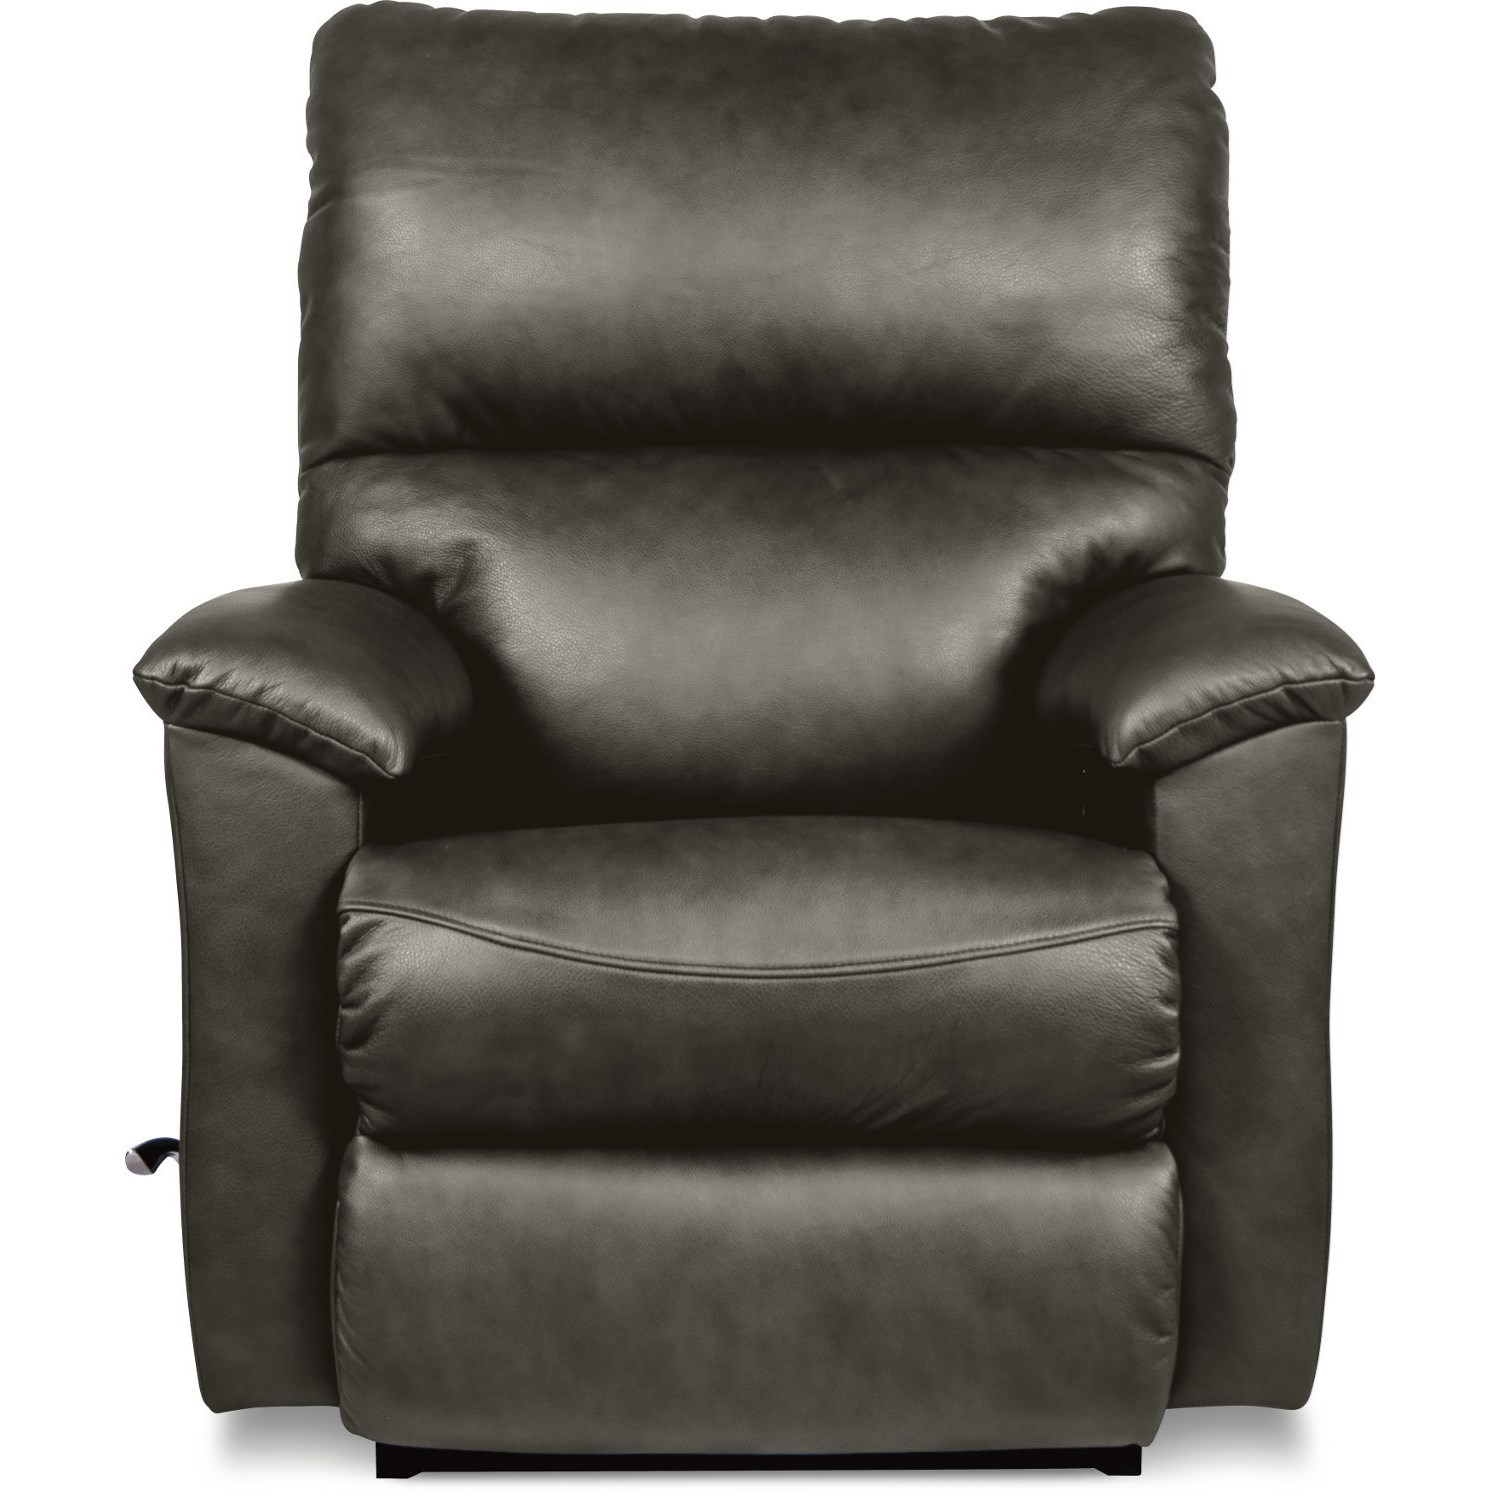 Brooks Power-Recline-XRw RECLINA-WAY Recliner by La-Z-Boy at Jordan's Home Furnishings